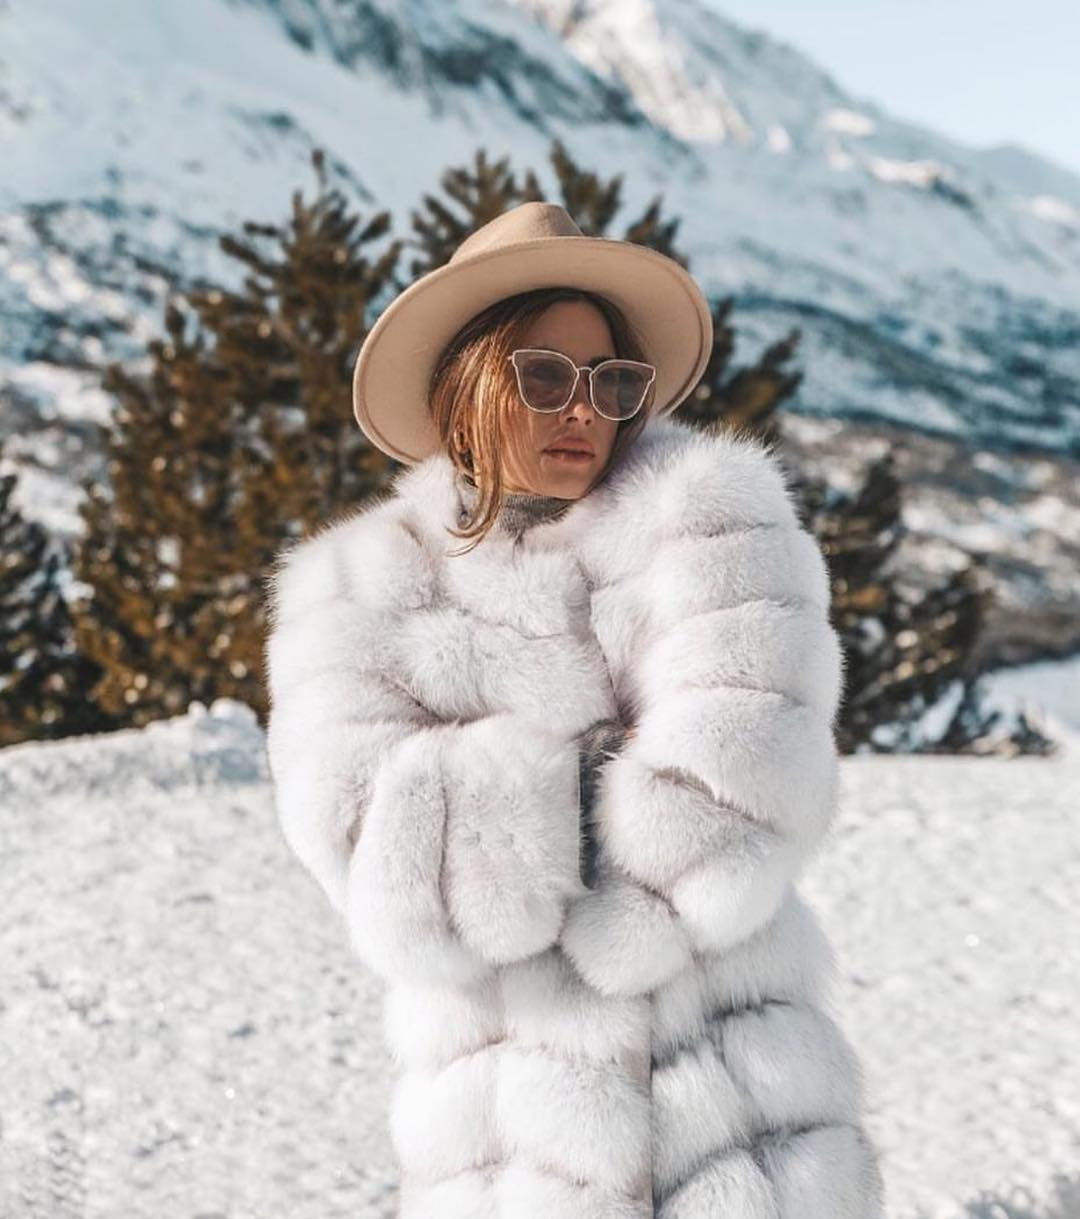 Big White Fur Coat And Fedora Hat For Winter 2019